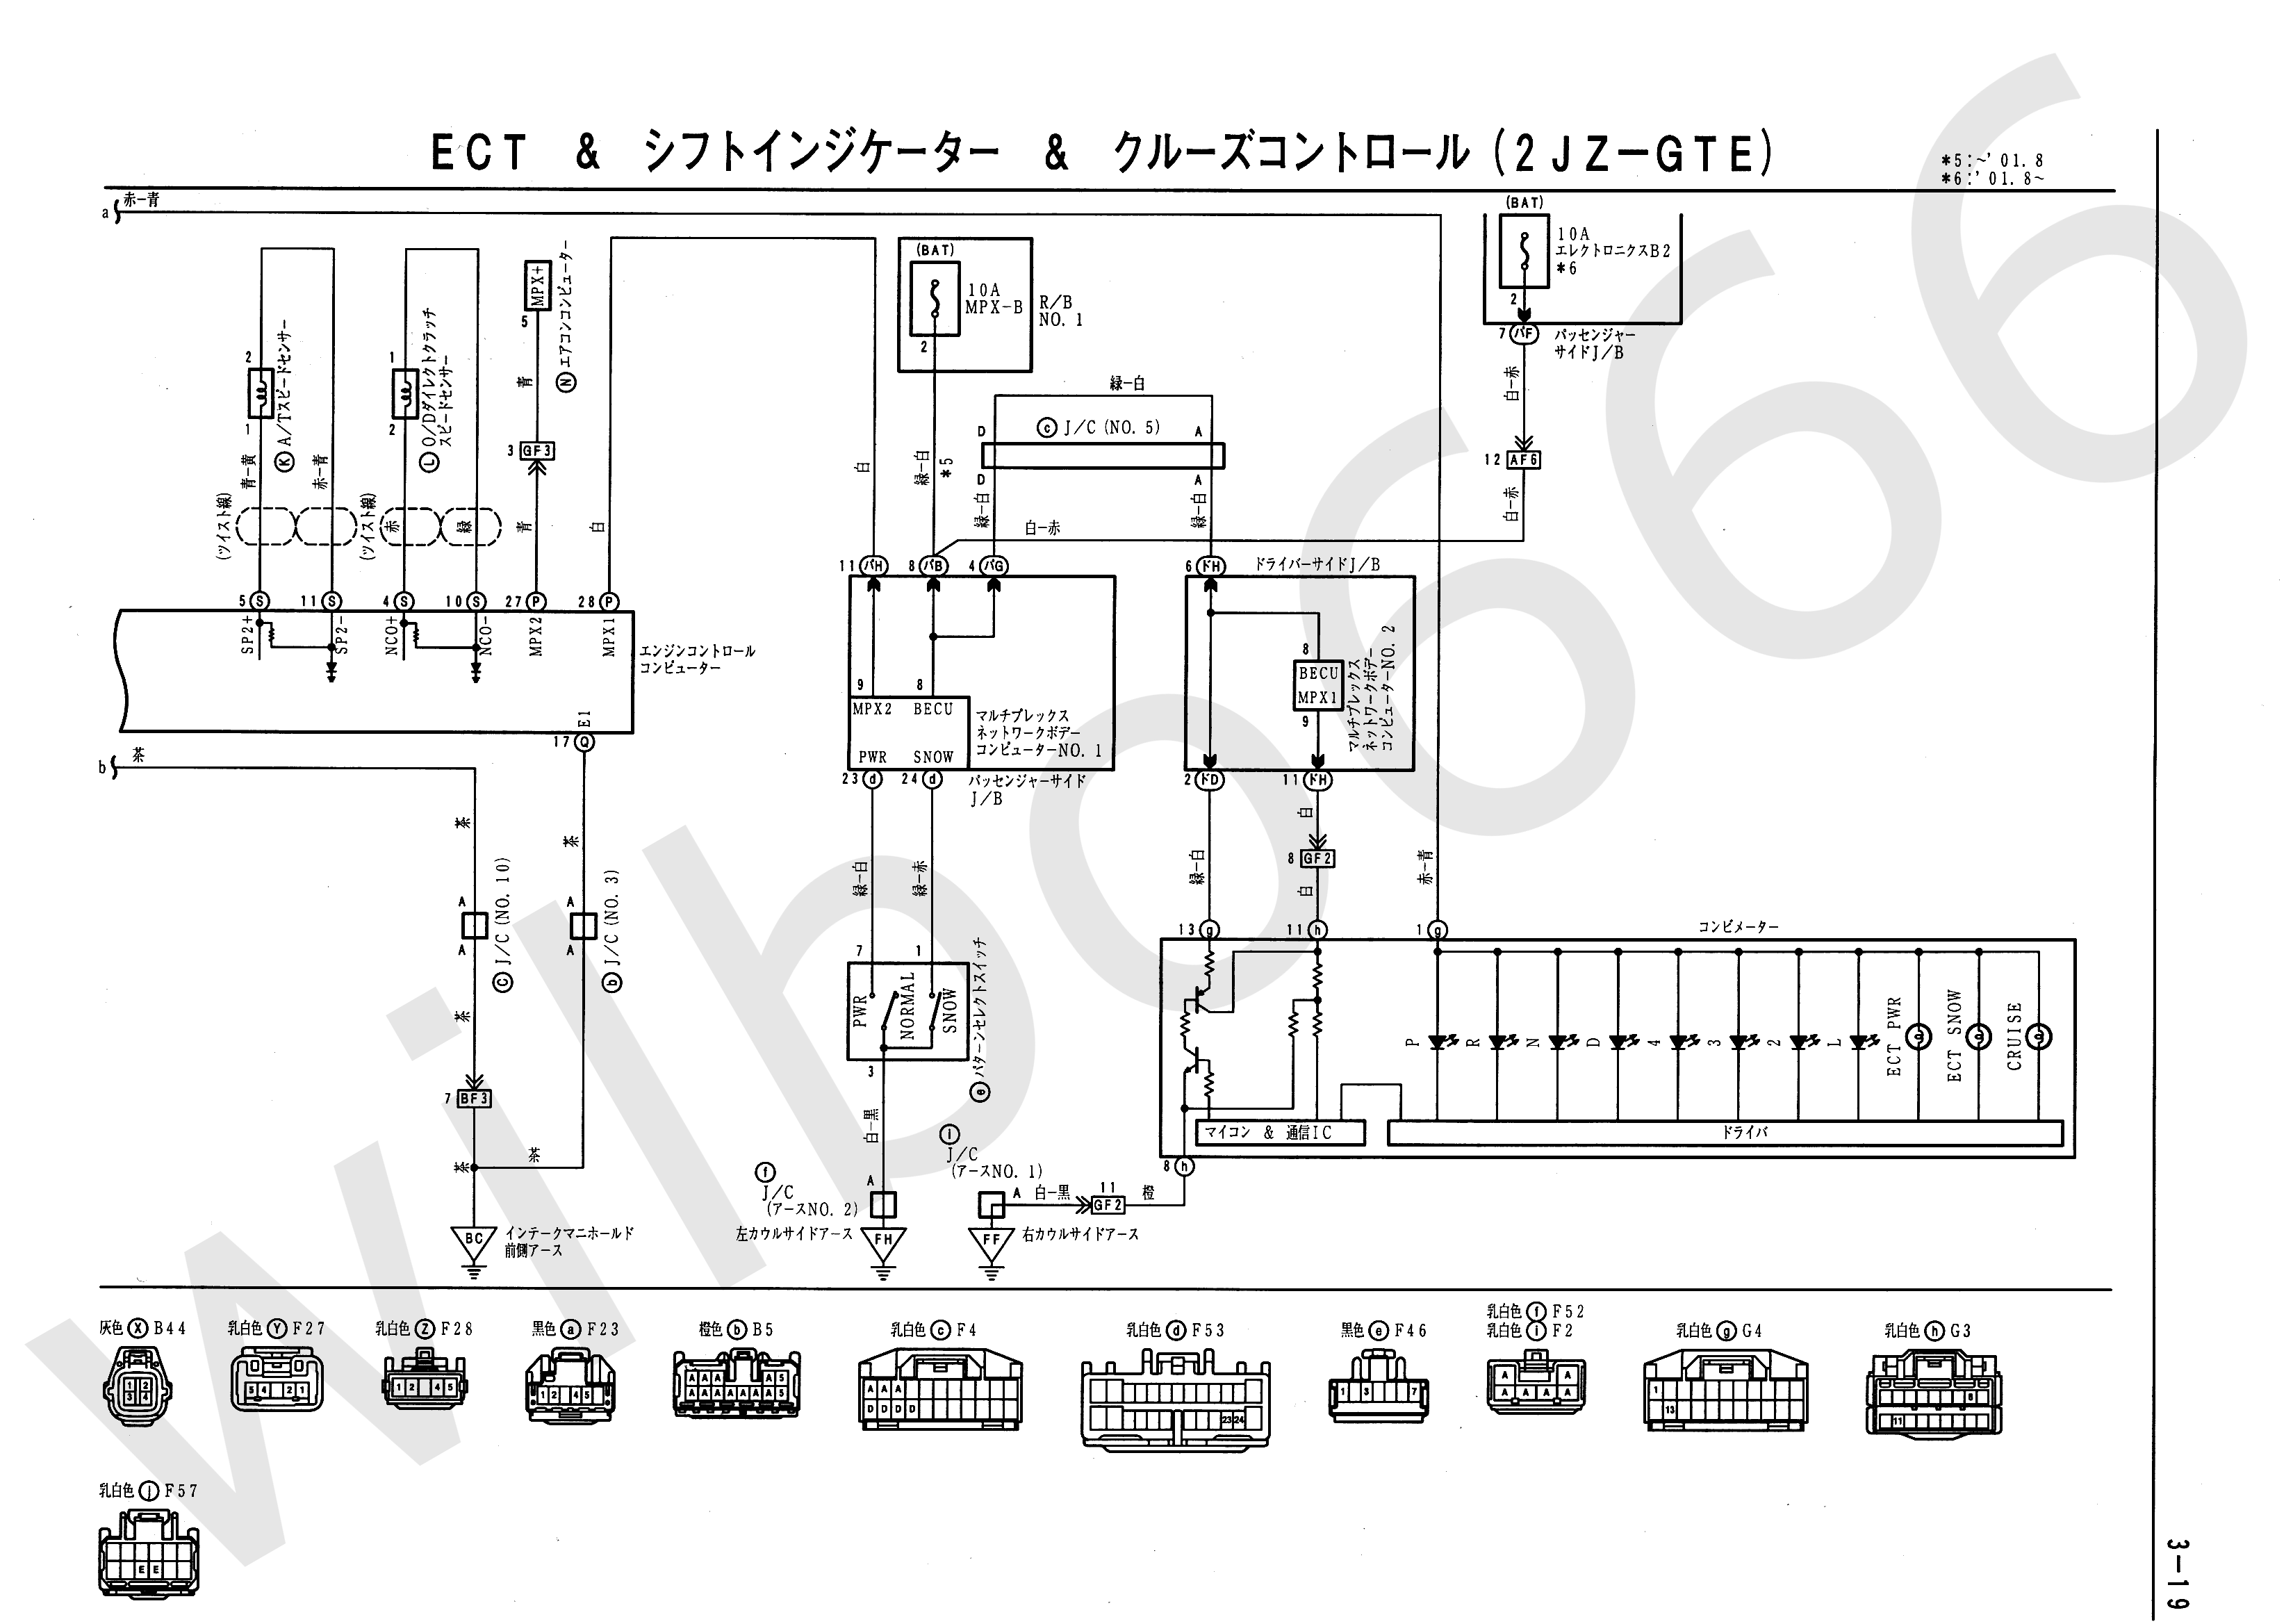 JZS161 Electrical Wiring Diagram 6748505 3 19 wilbo666 2jz gte vvti jzs161 aristo engine wiring 2jzgte vvti wiring harness at suagrazia.org